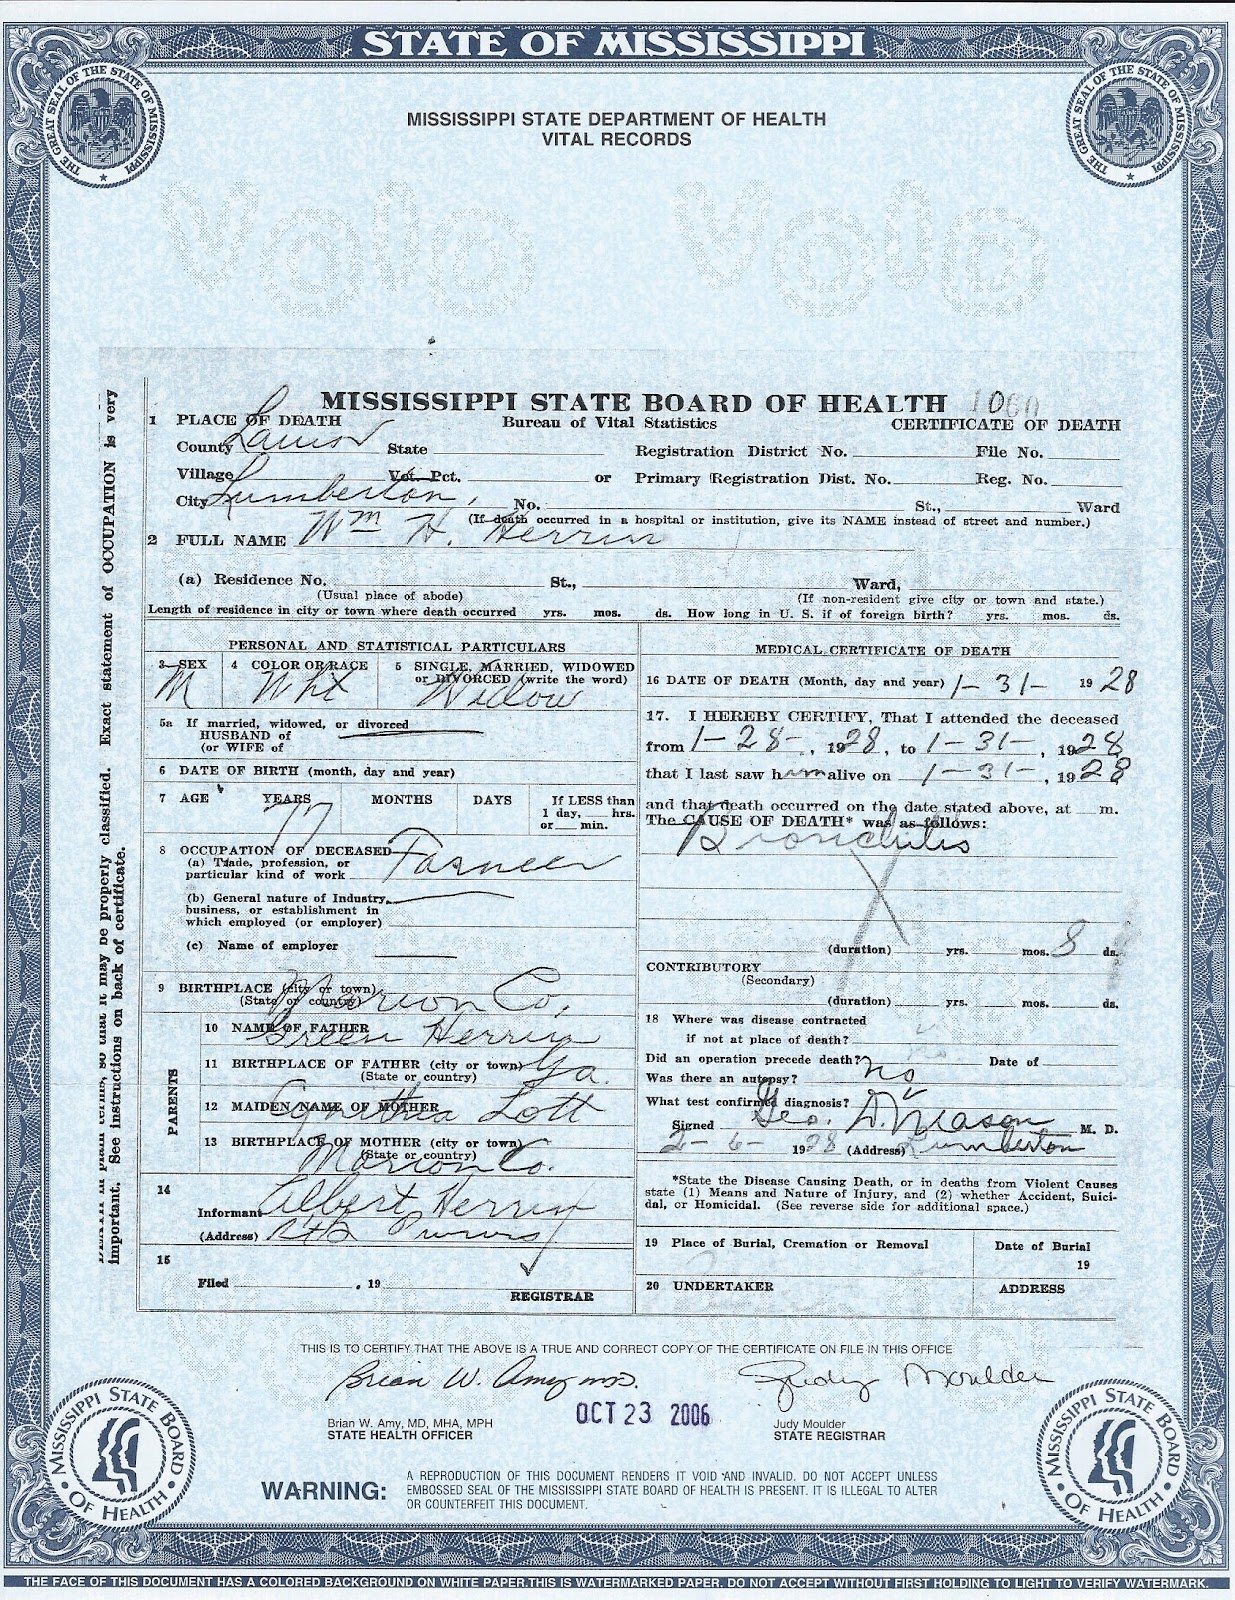 The family snoop death certificate william h herrin death certificate william h herrin xflitez Images